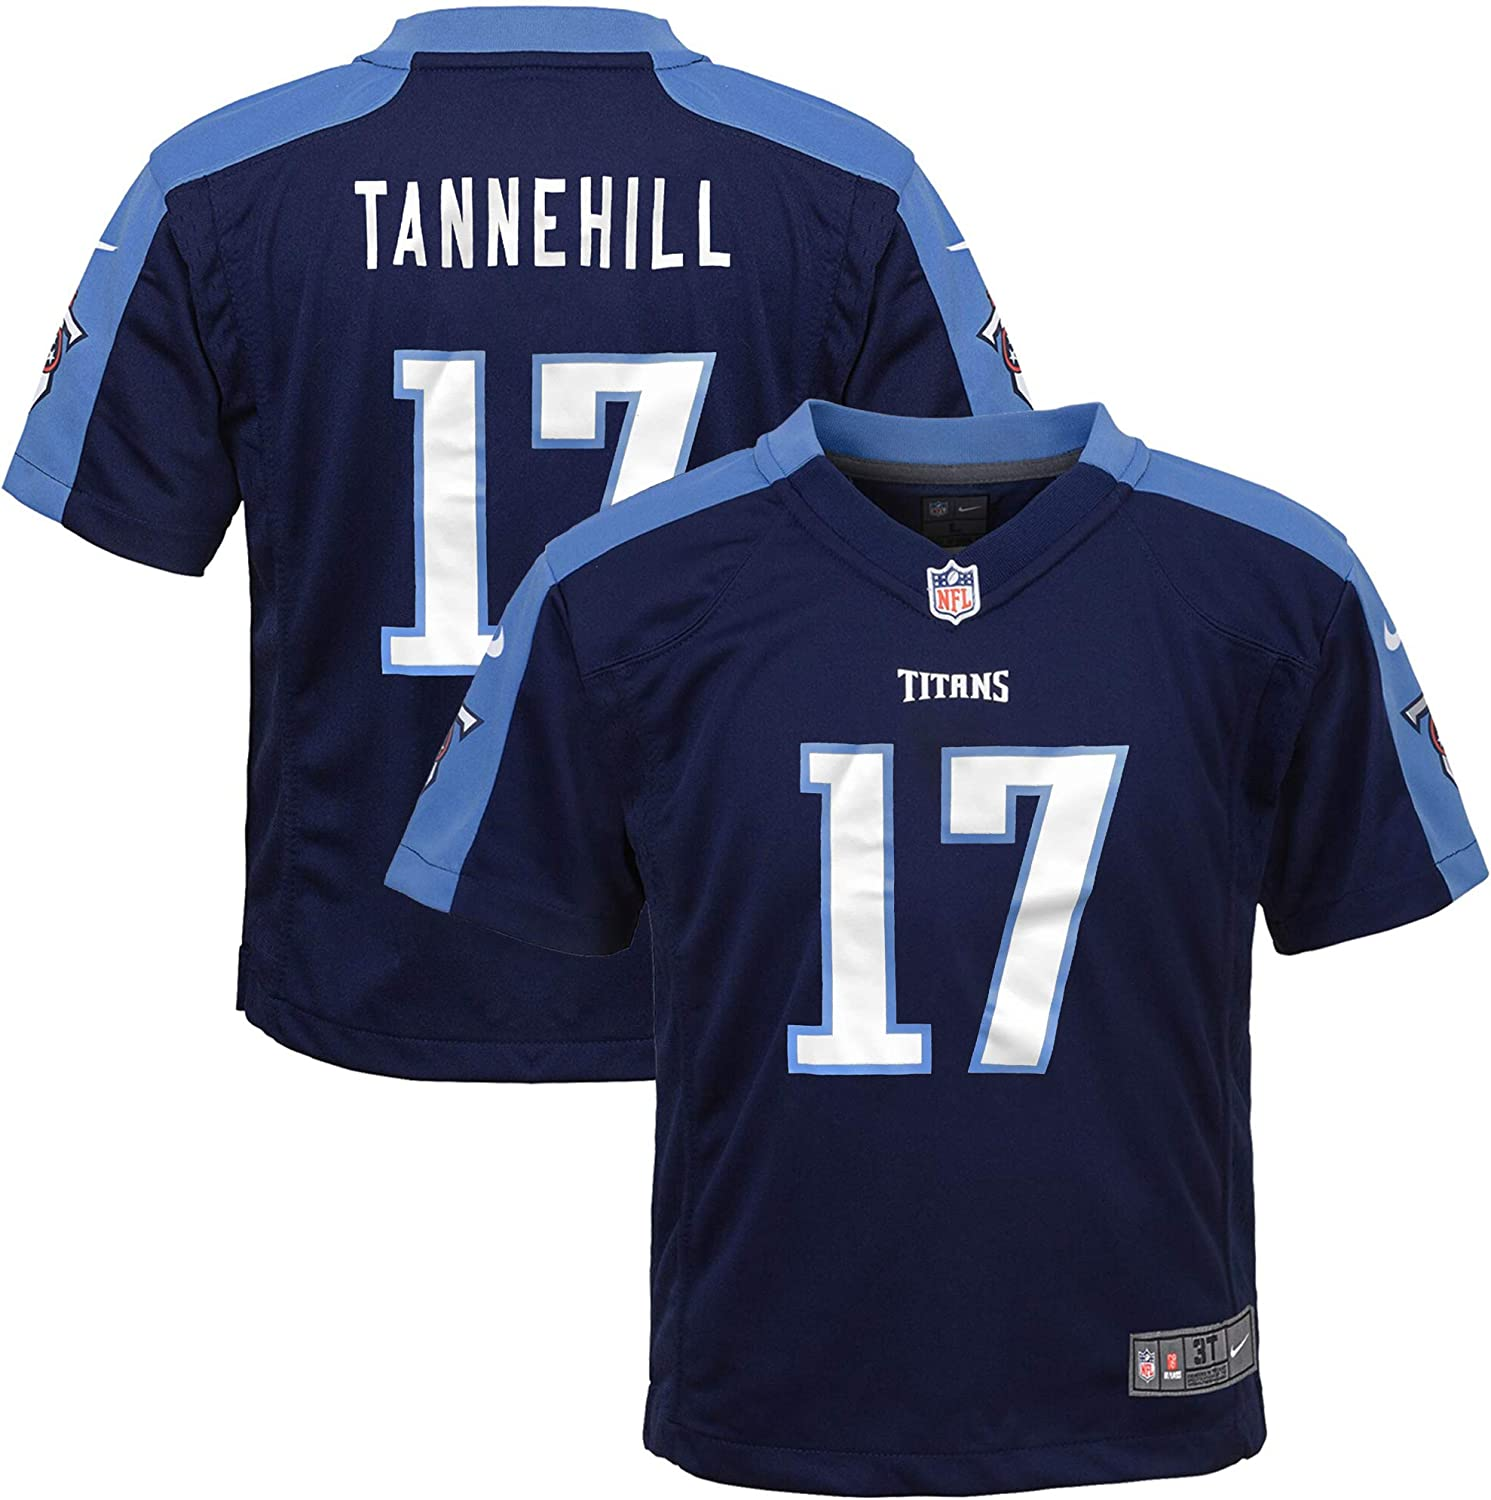 Ryan Tannehill Tennessee Titans #17 Youth 8-20 Navy Home Game Day Jersey